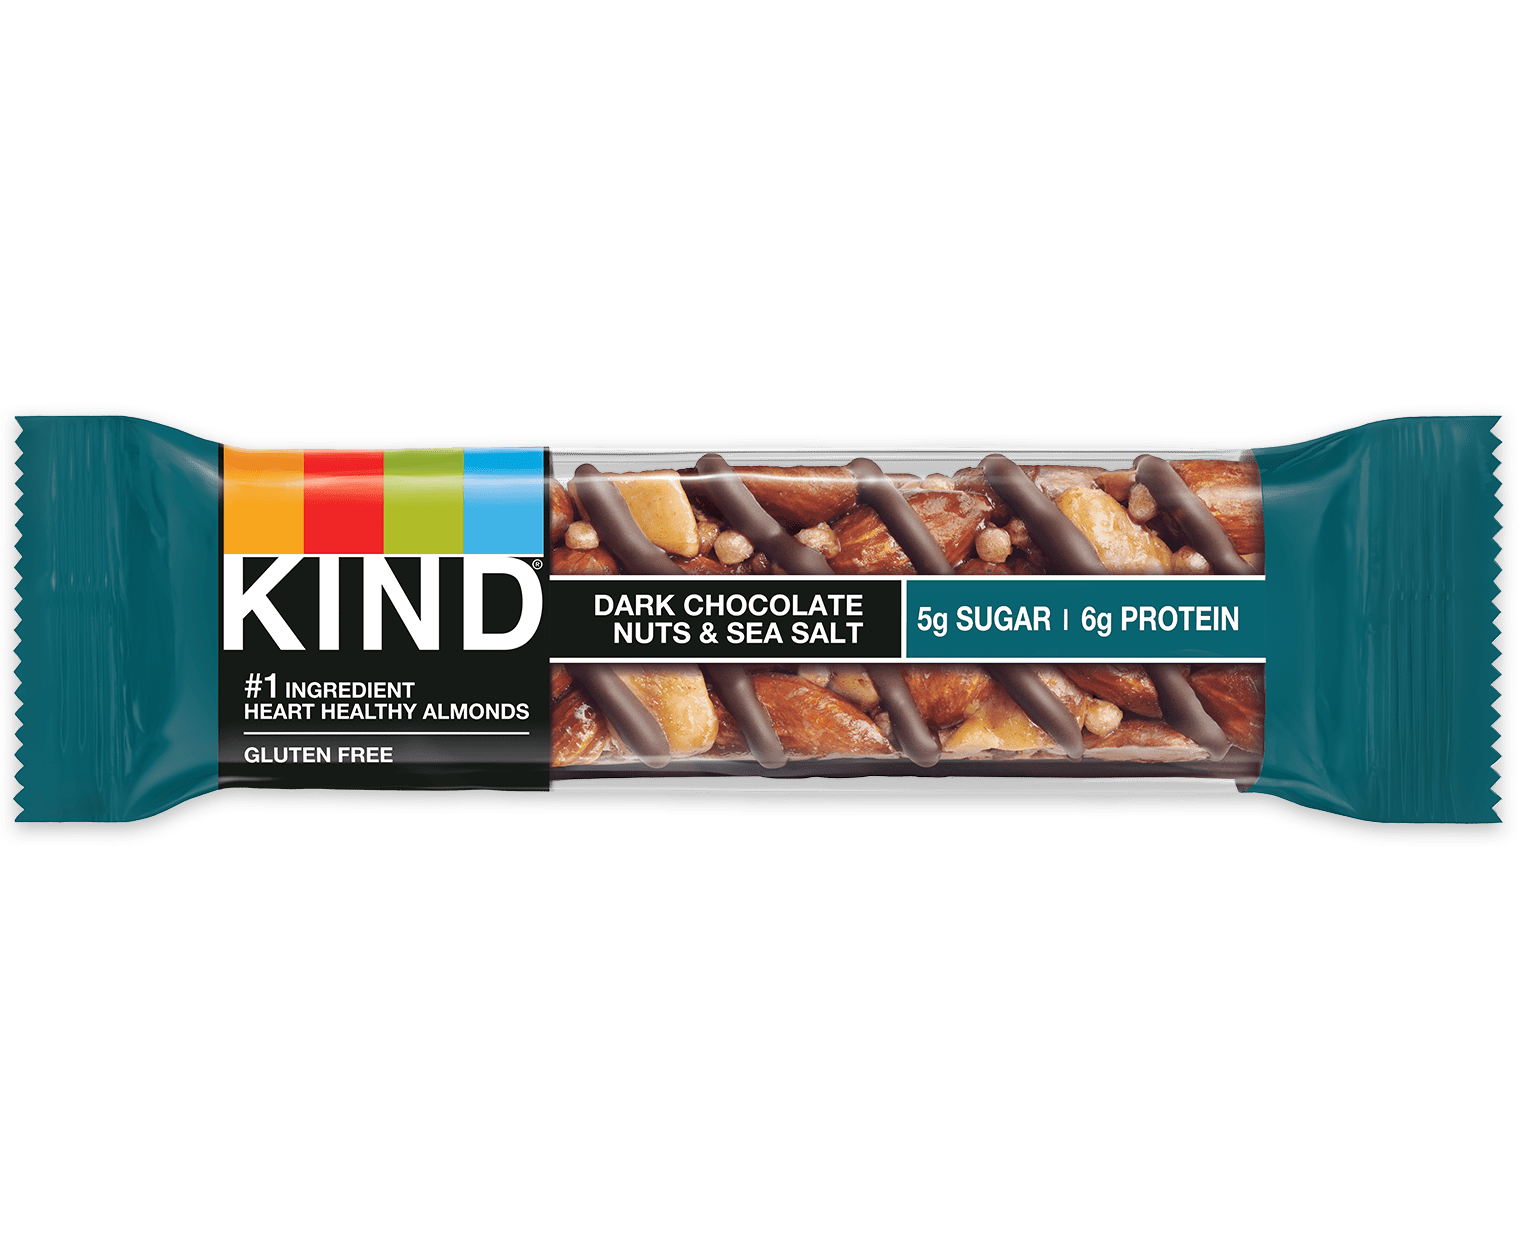 Dark Chocolate Nuts amp Sea Salt Bars Mixed Nut Bars